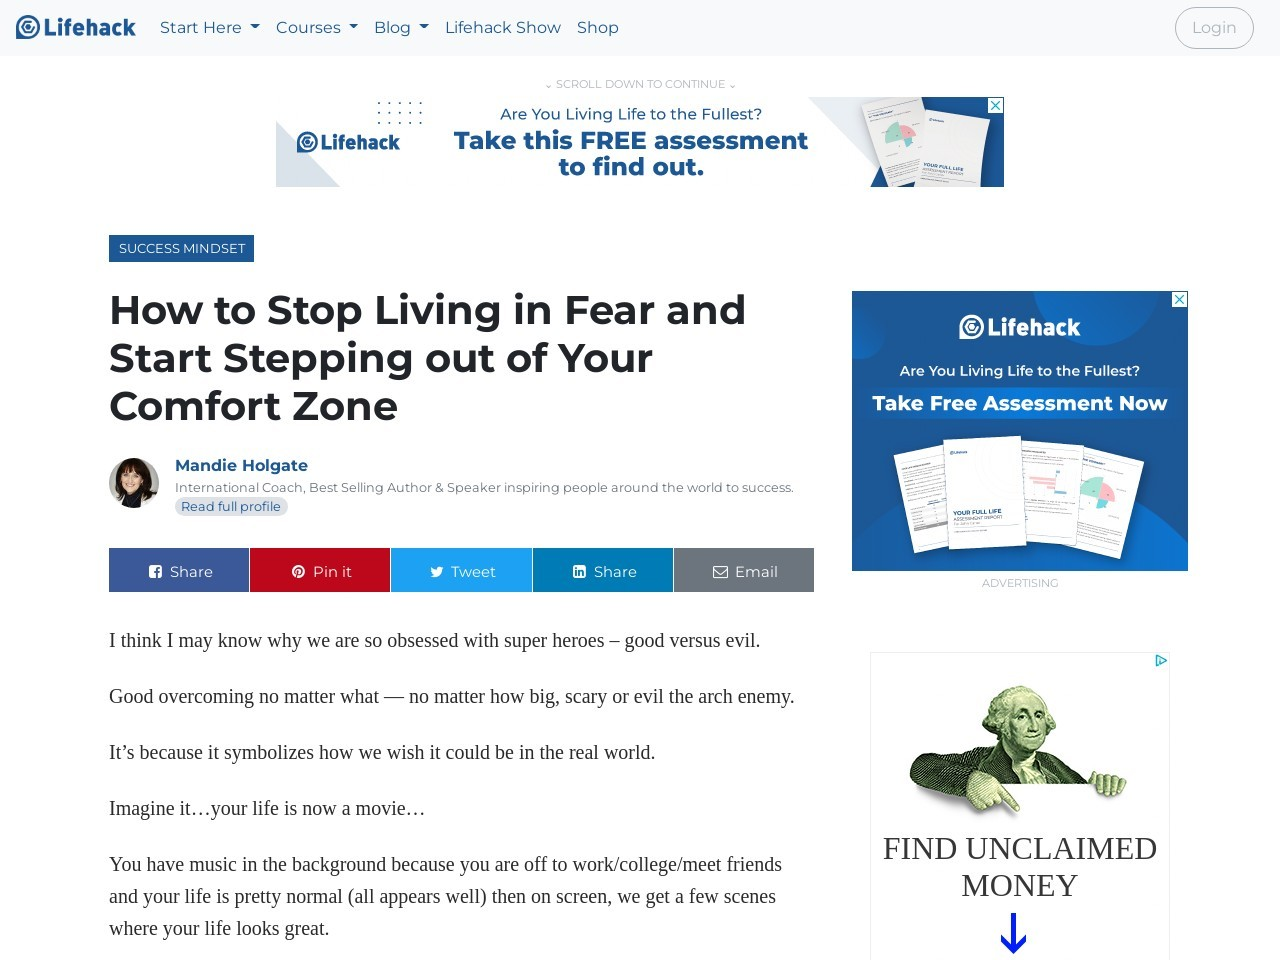 How to Stop Living in Fear and Start Stepping out of Your Comfort Zone